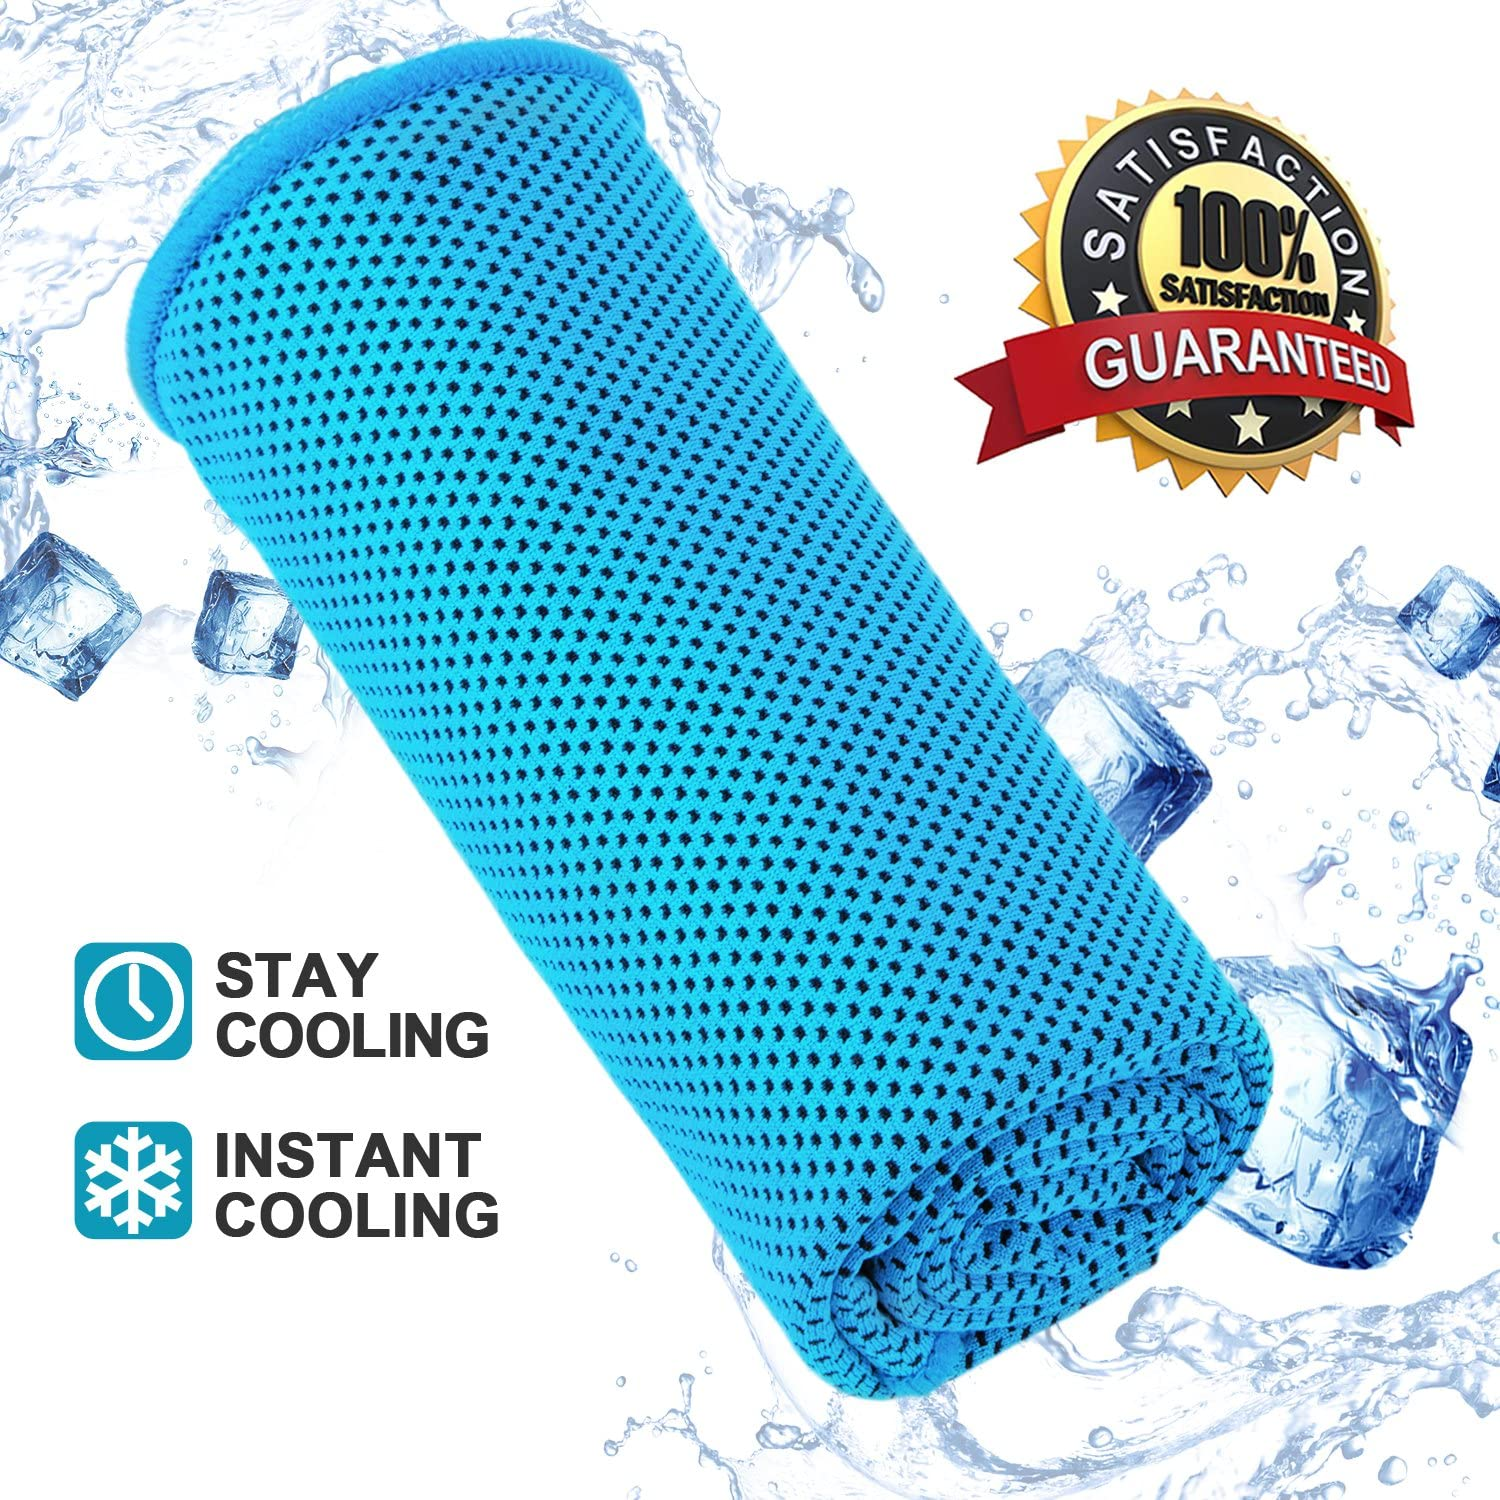 Cooling Towel Stay Cool Yoga Towel Microfiber Towel Lightweight Gym Towels for Camping Hiking Golf Travel Workout Sports Fitness Fast Quick Dry Towel